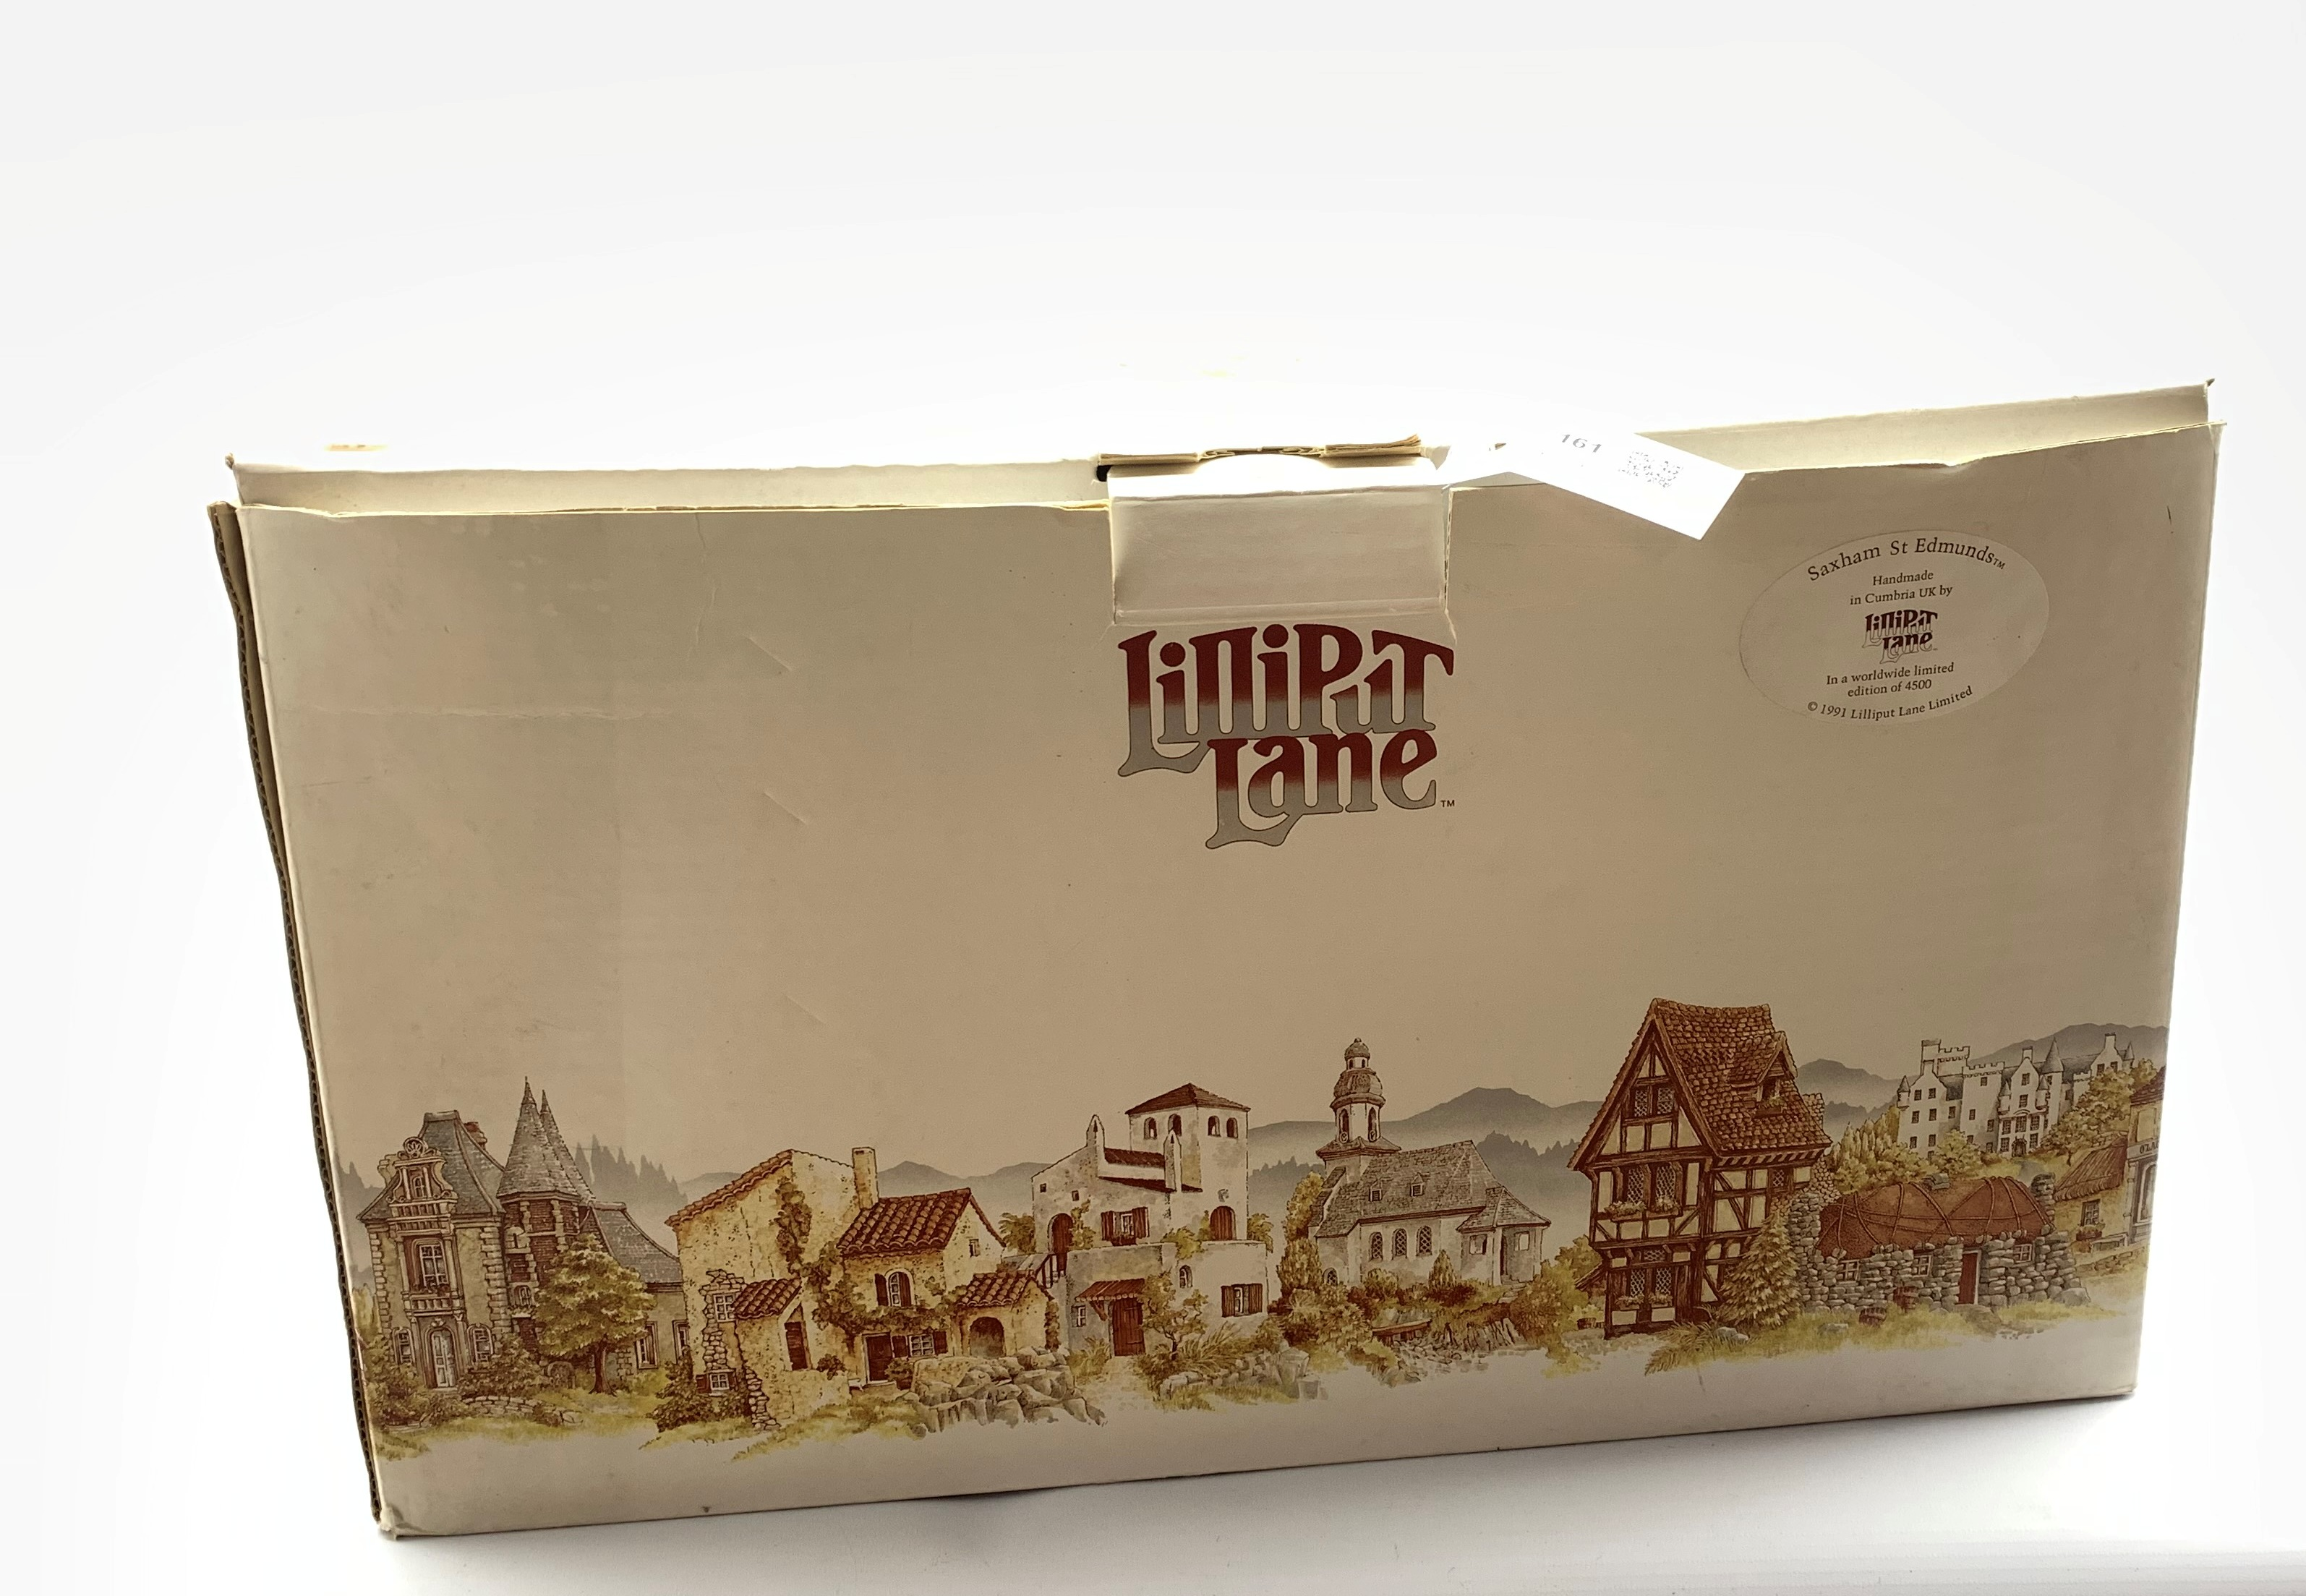 Large Lilliput Lane limited edition model 'Saxham St. Edmunds' No. 457/4500, boxed with certificate, - Image 3 of 3